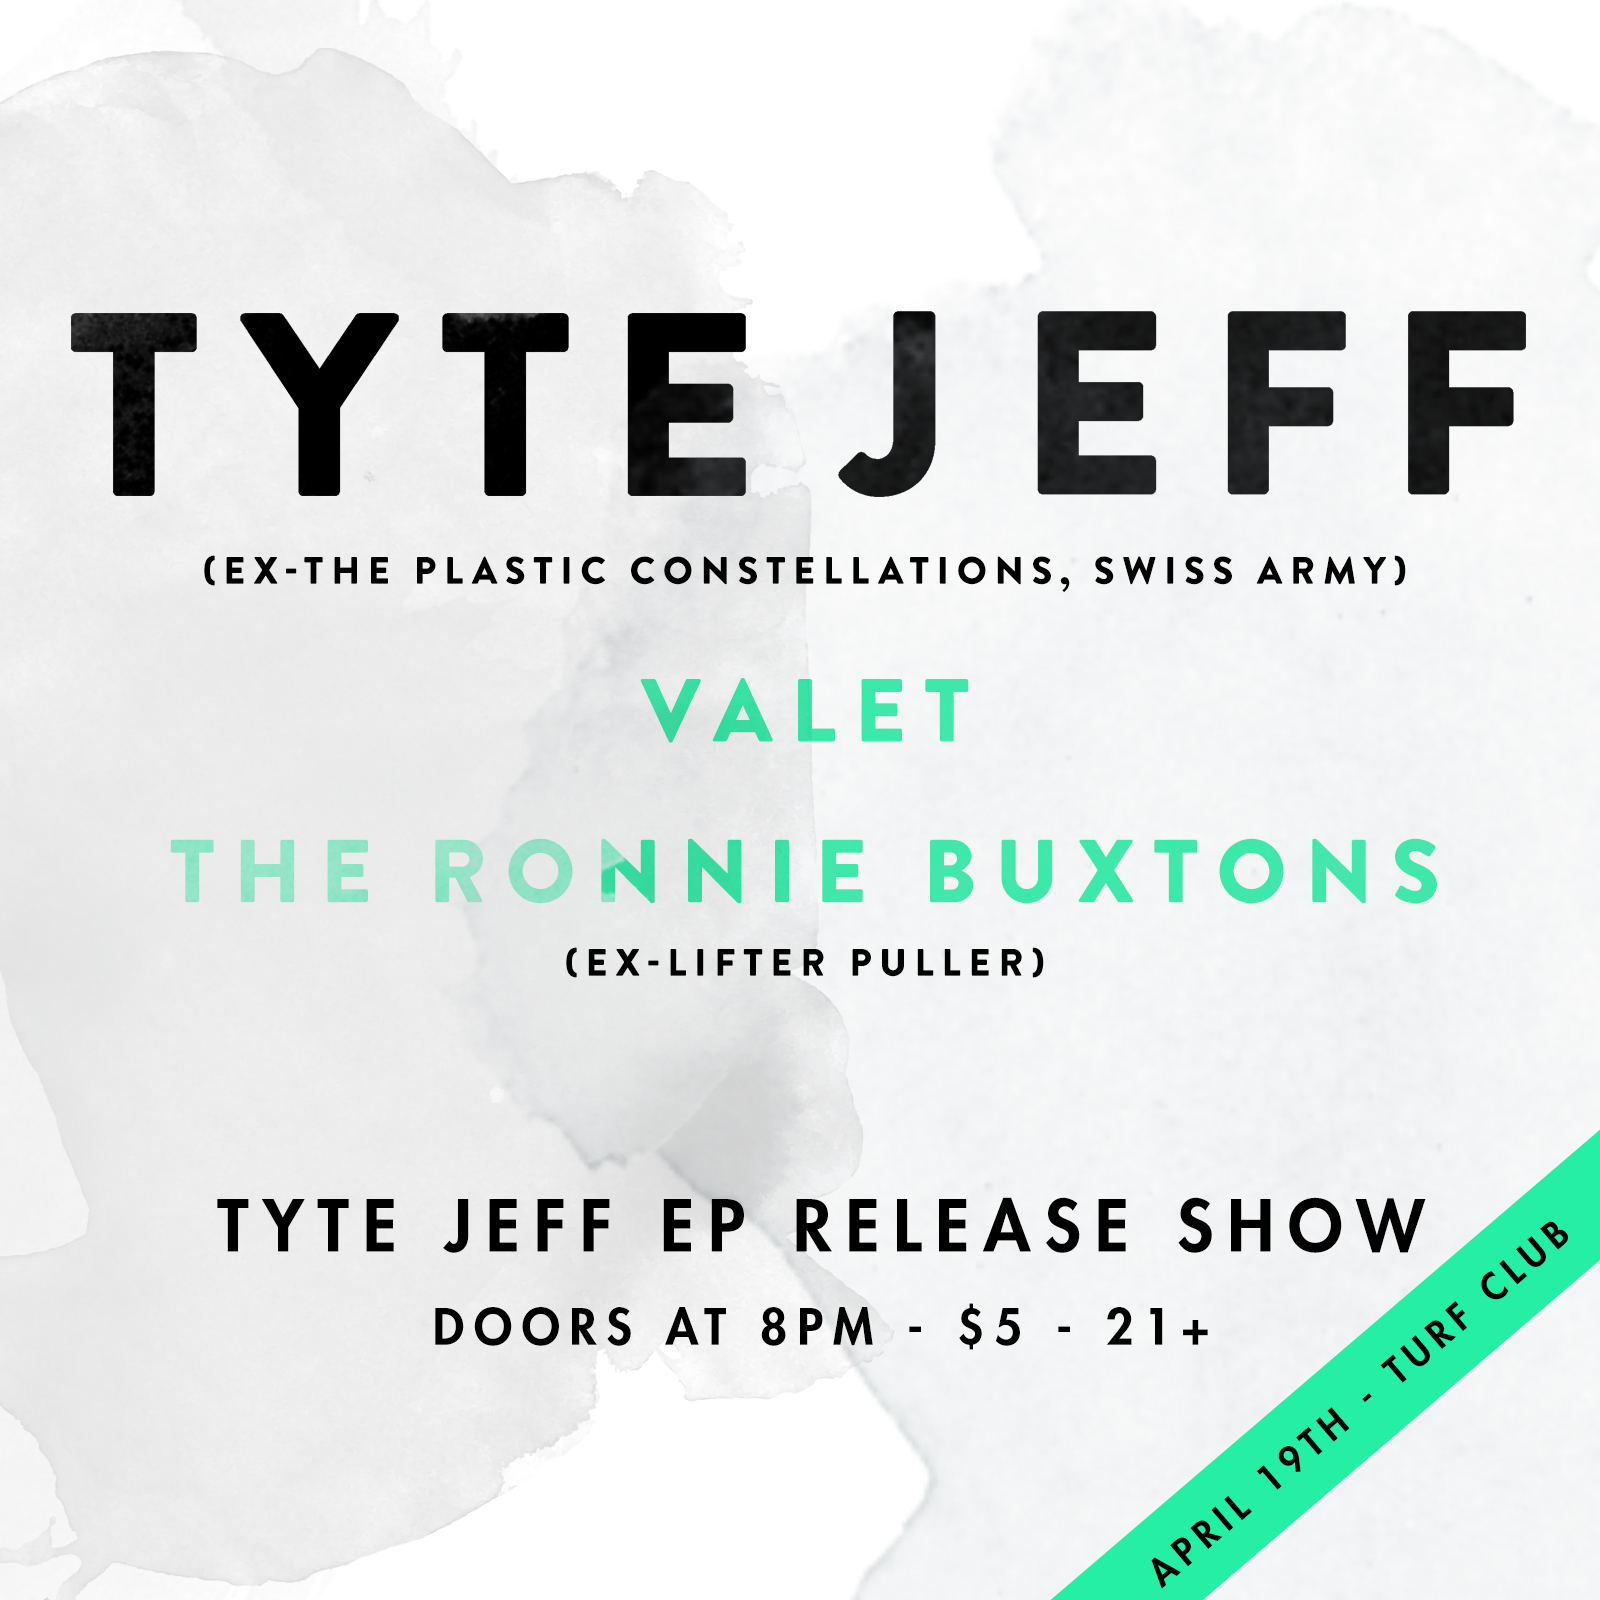 tyte_jeff_flyer_square